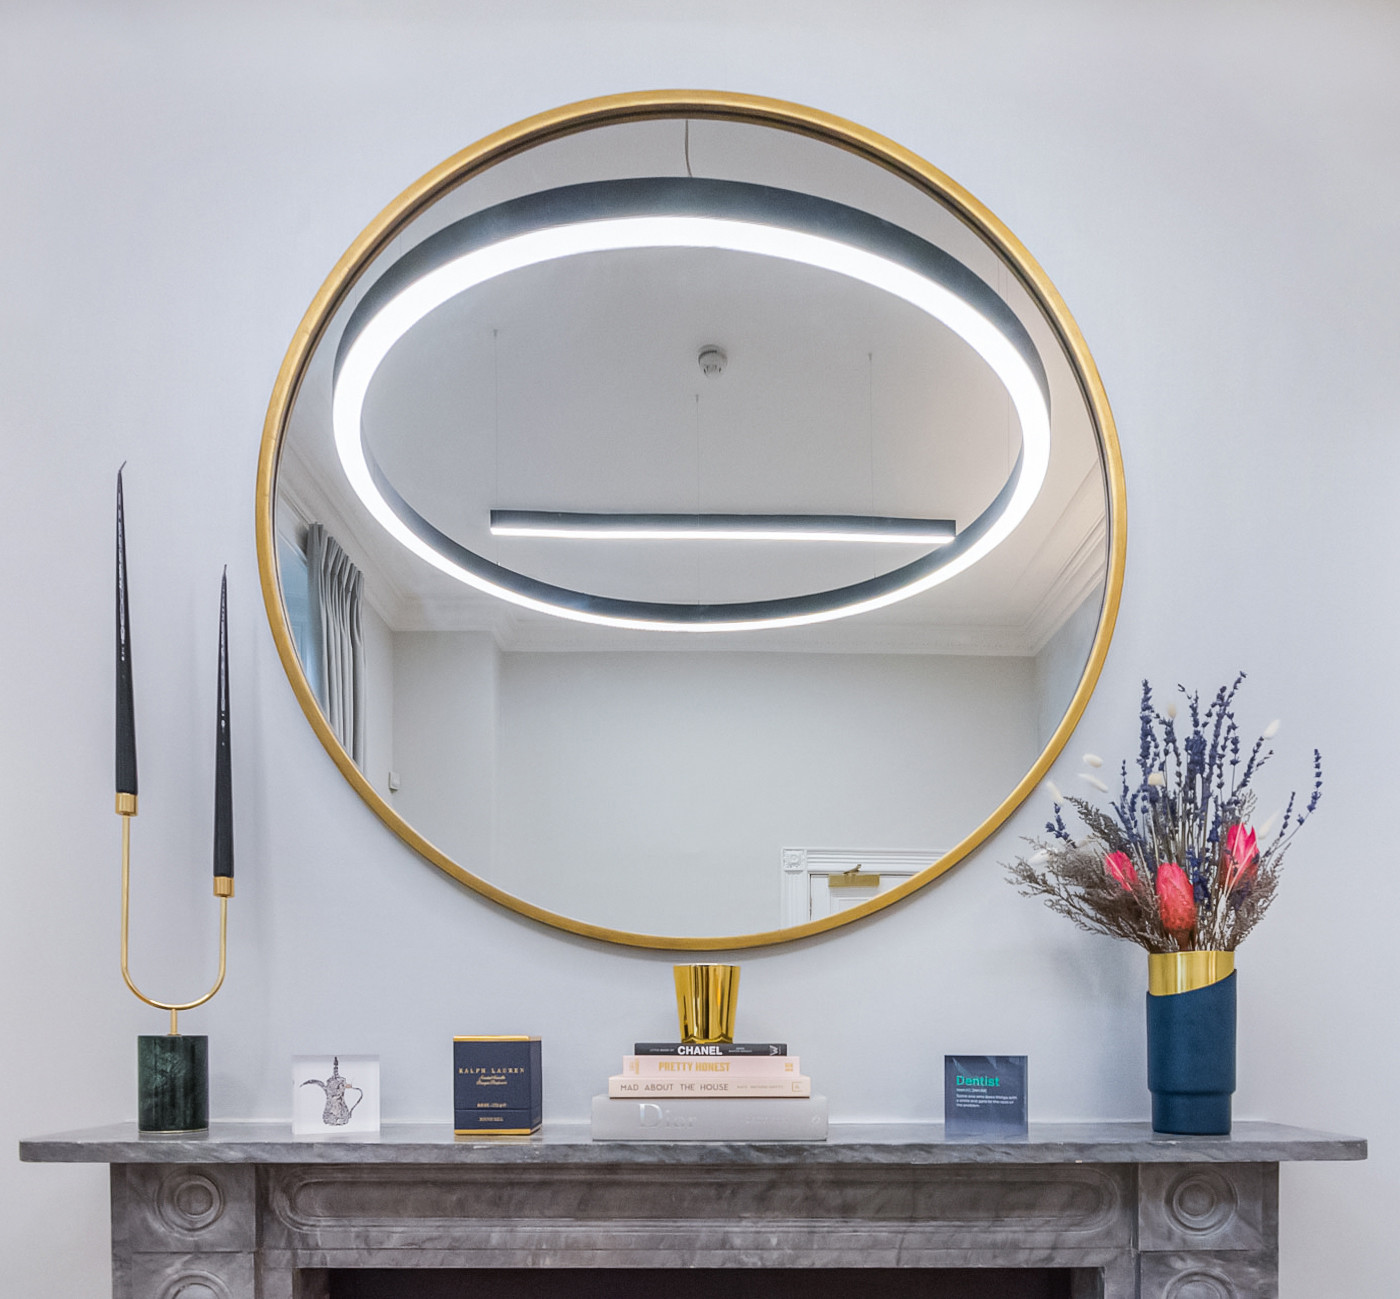 Premium design details brass circular mirror and a hanging halo light at the luxury dental clinic in harley street